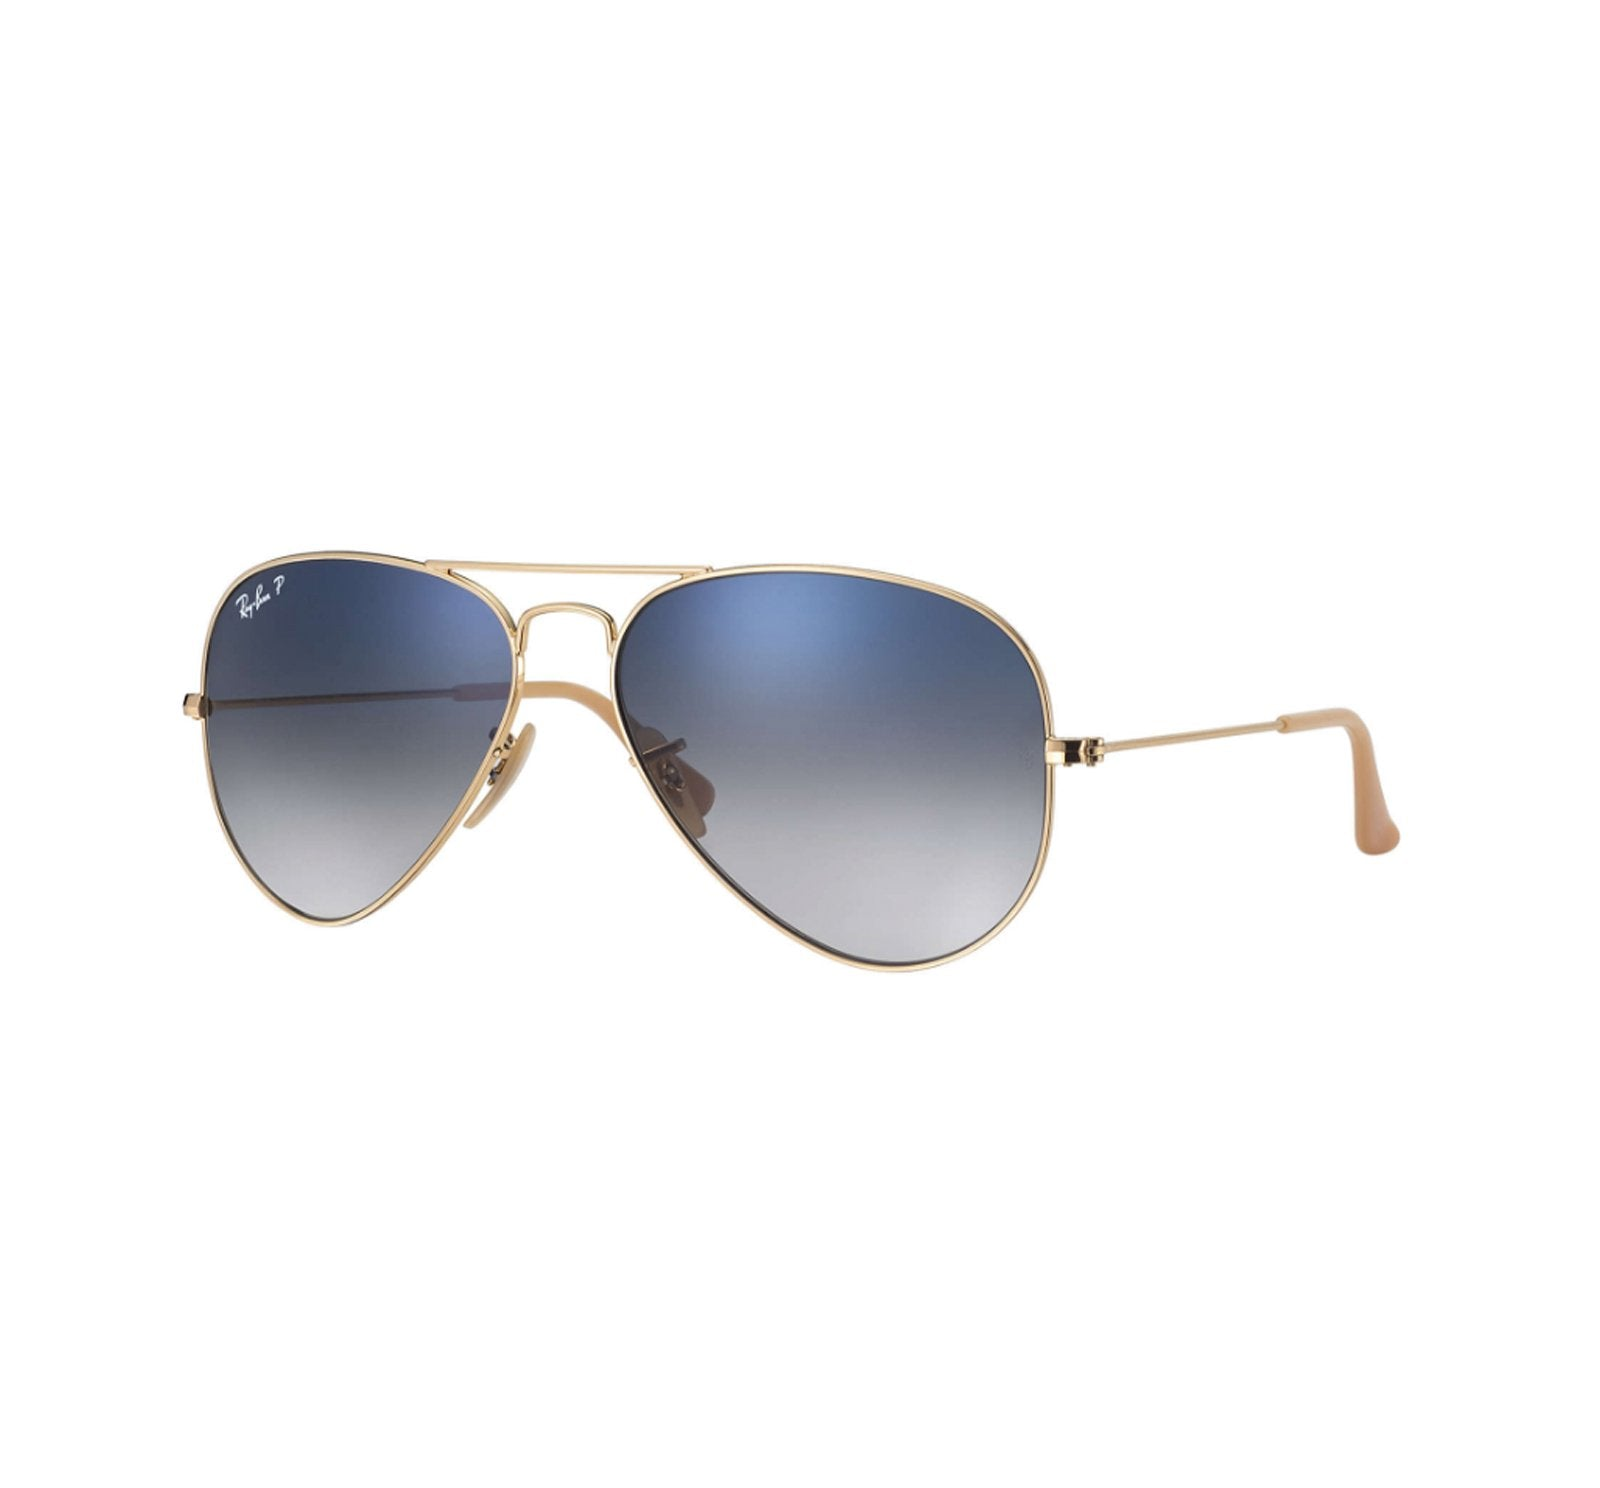 Ray-Ban Aviator Men's Sunglasses - Gold Metal/Gradient Blue